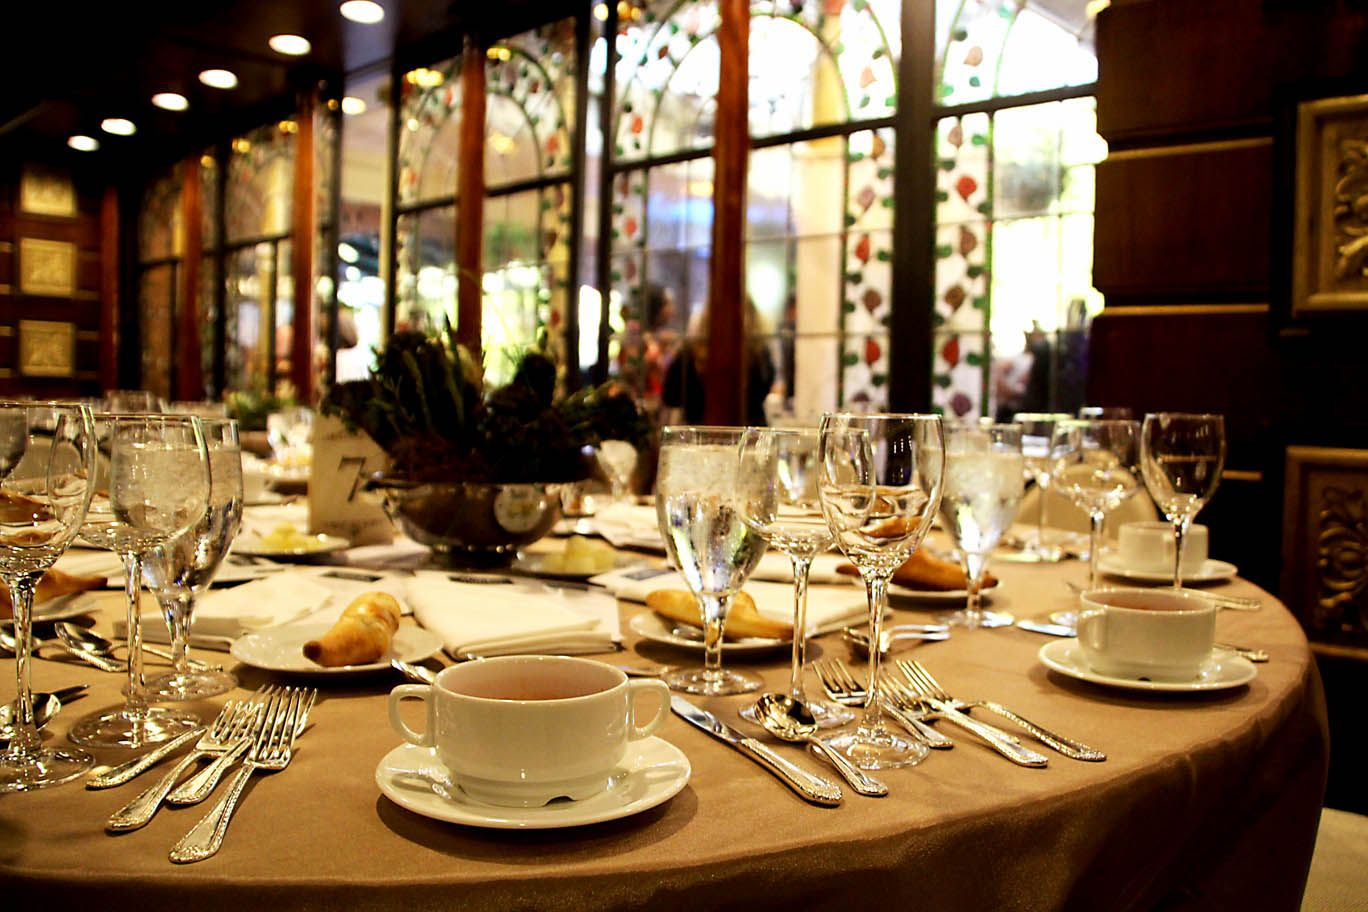 The 2014 Montclair Food & Wine Festival Chefs Gala was